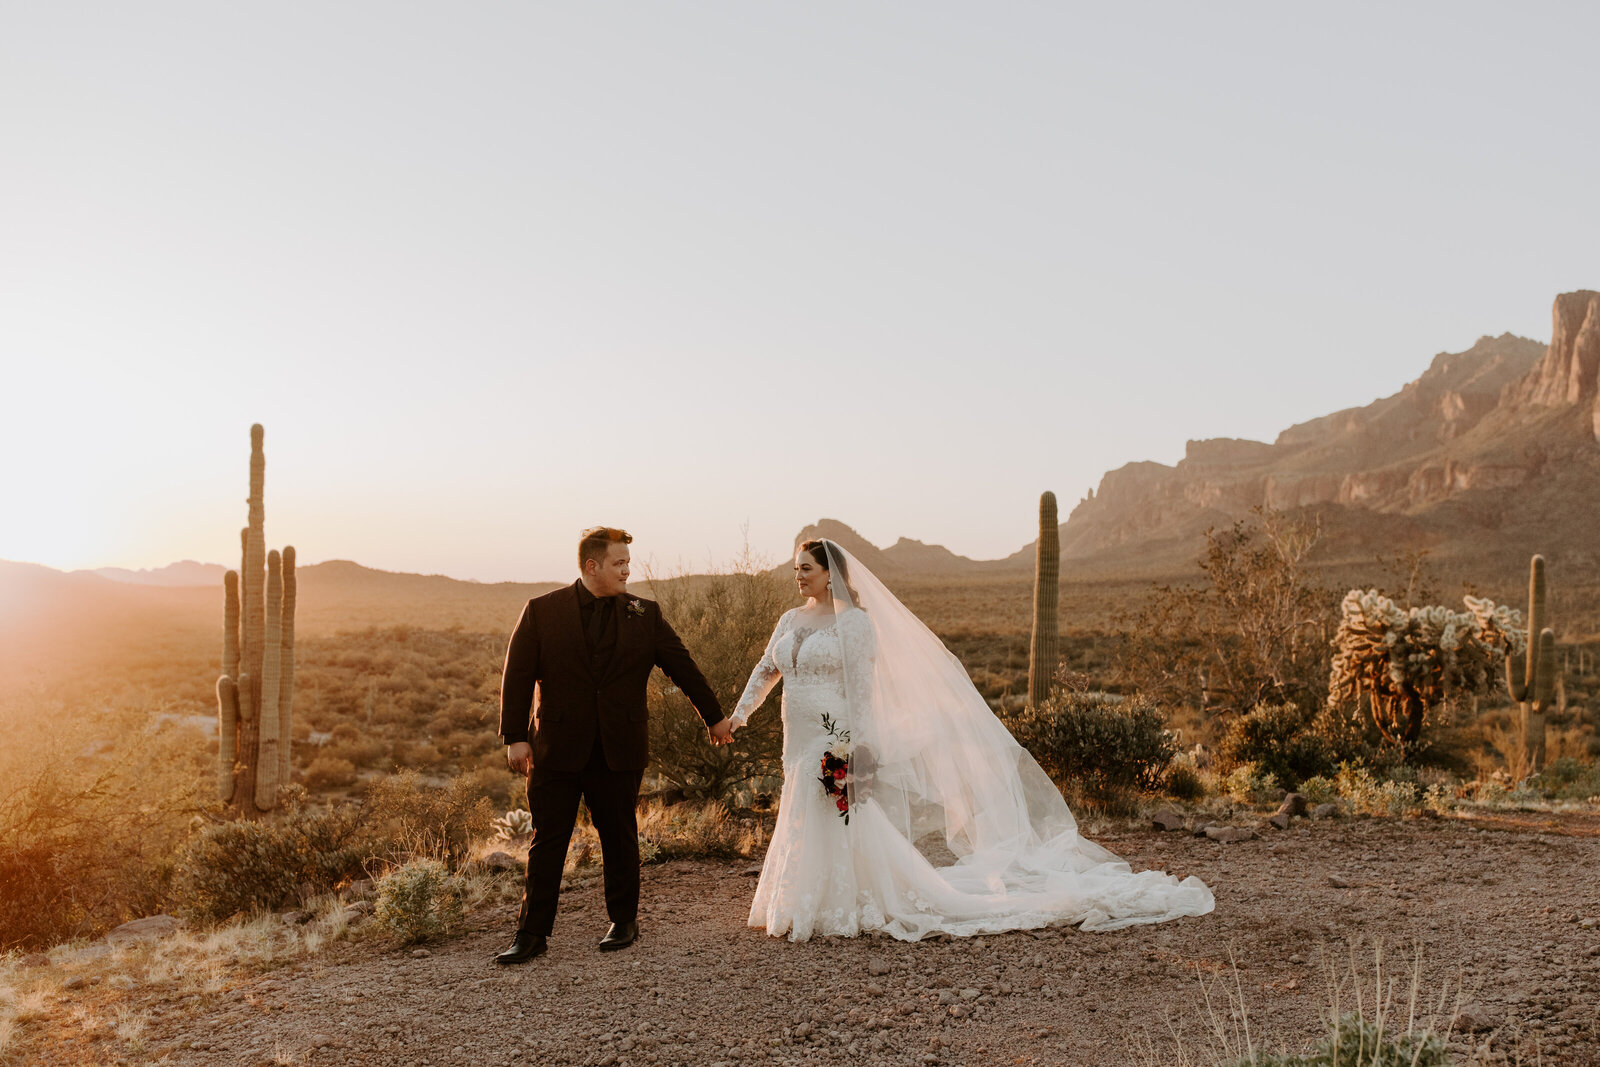 Arizona desert wedding at Tela Peralta Trail